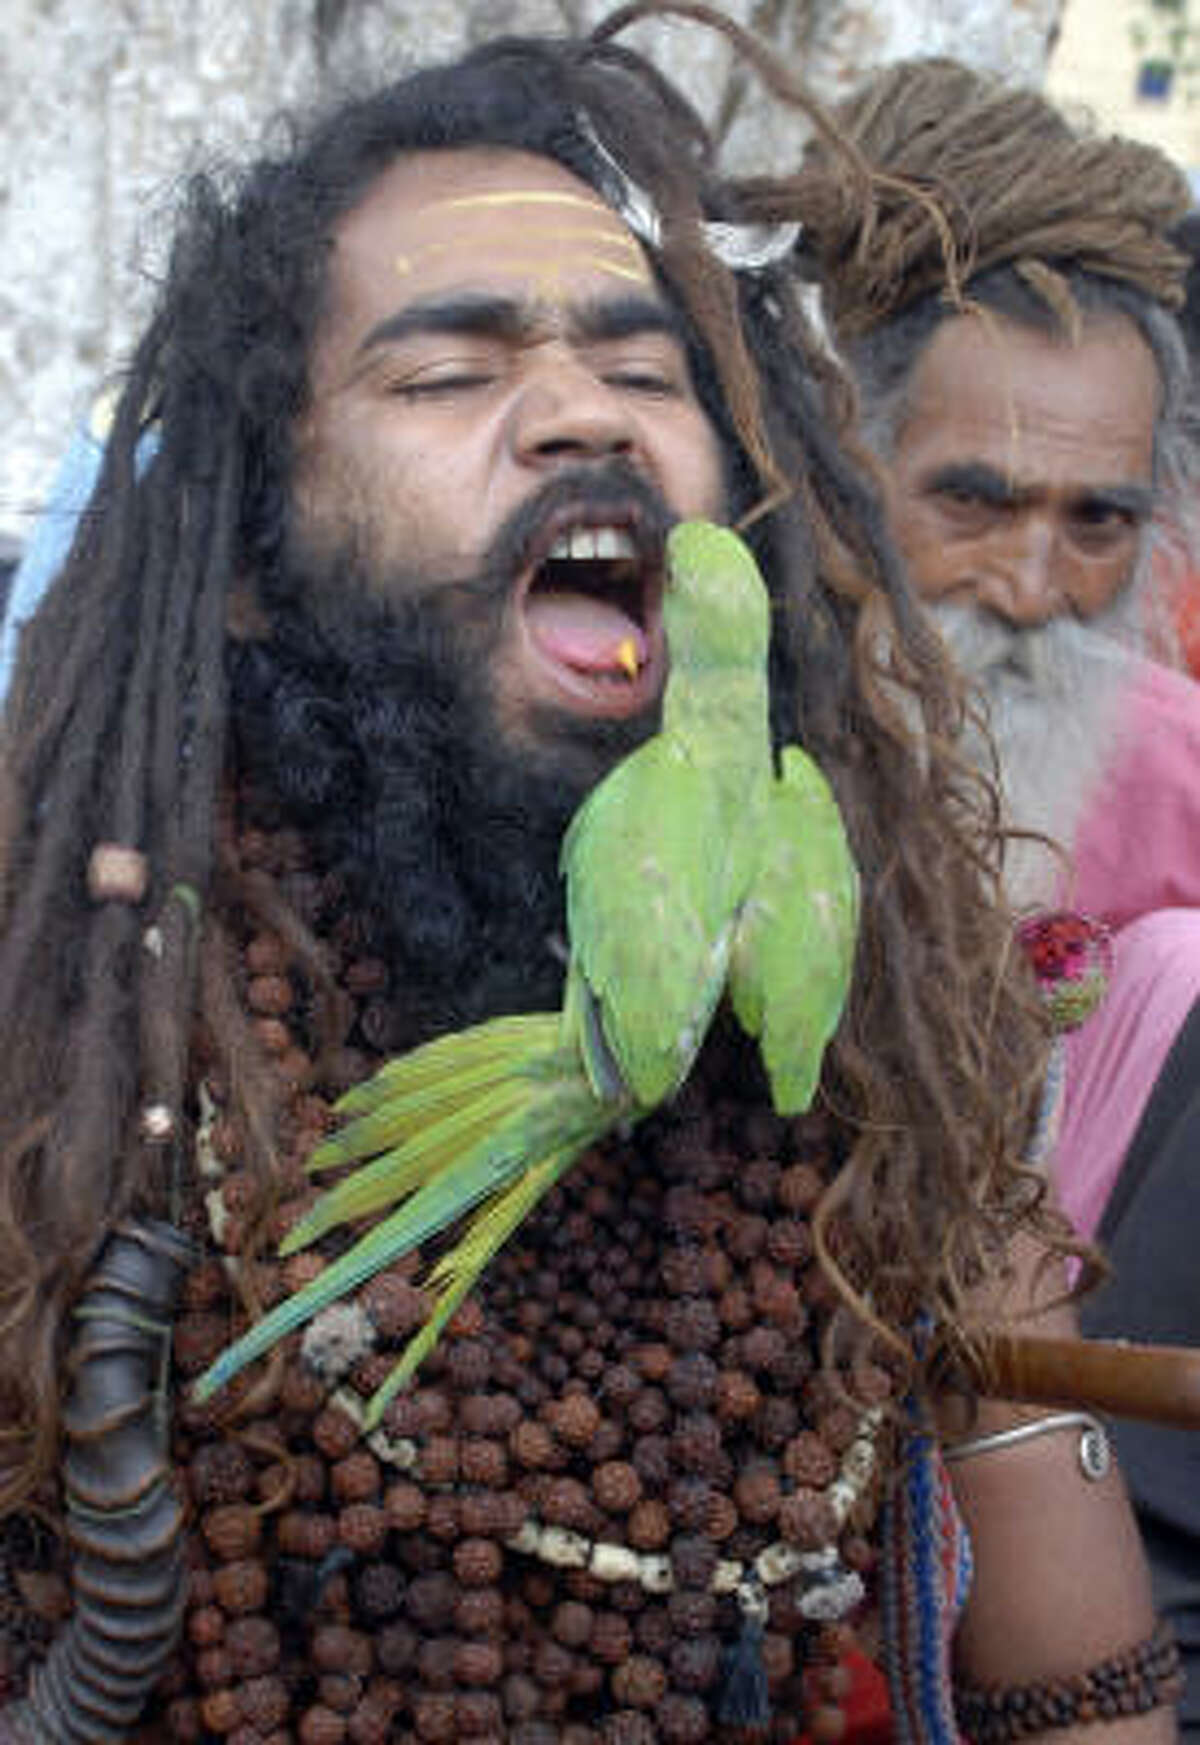 As the parrot feeds from the mouth of a Hindu holy man in Jammu, India, is the bird thinking about selling his red Michael Jackson jacket on eBay or making a nest in that beard?